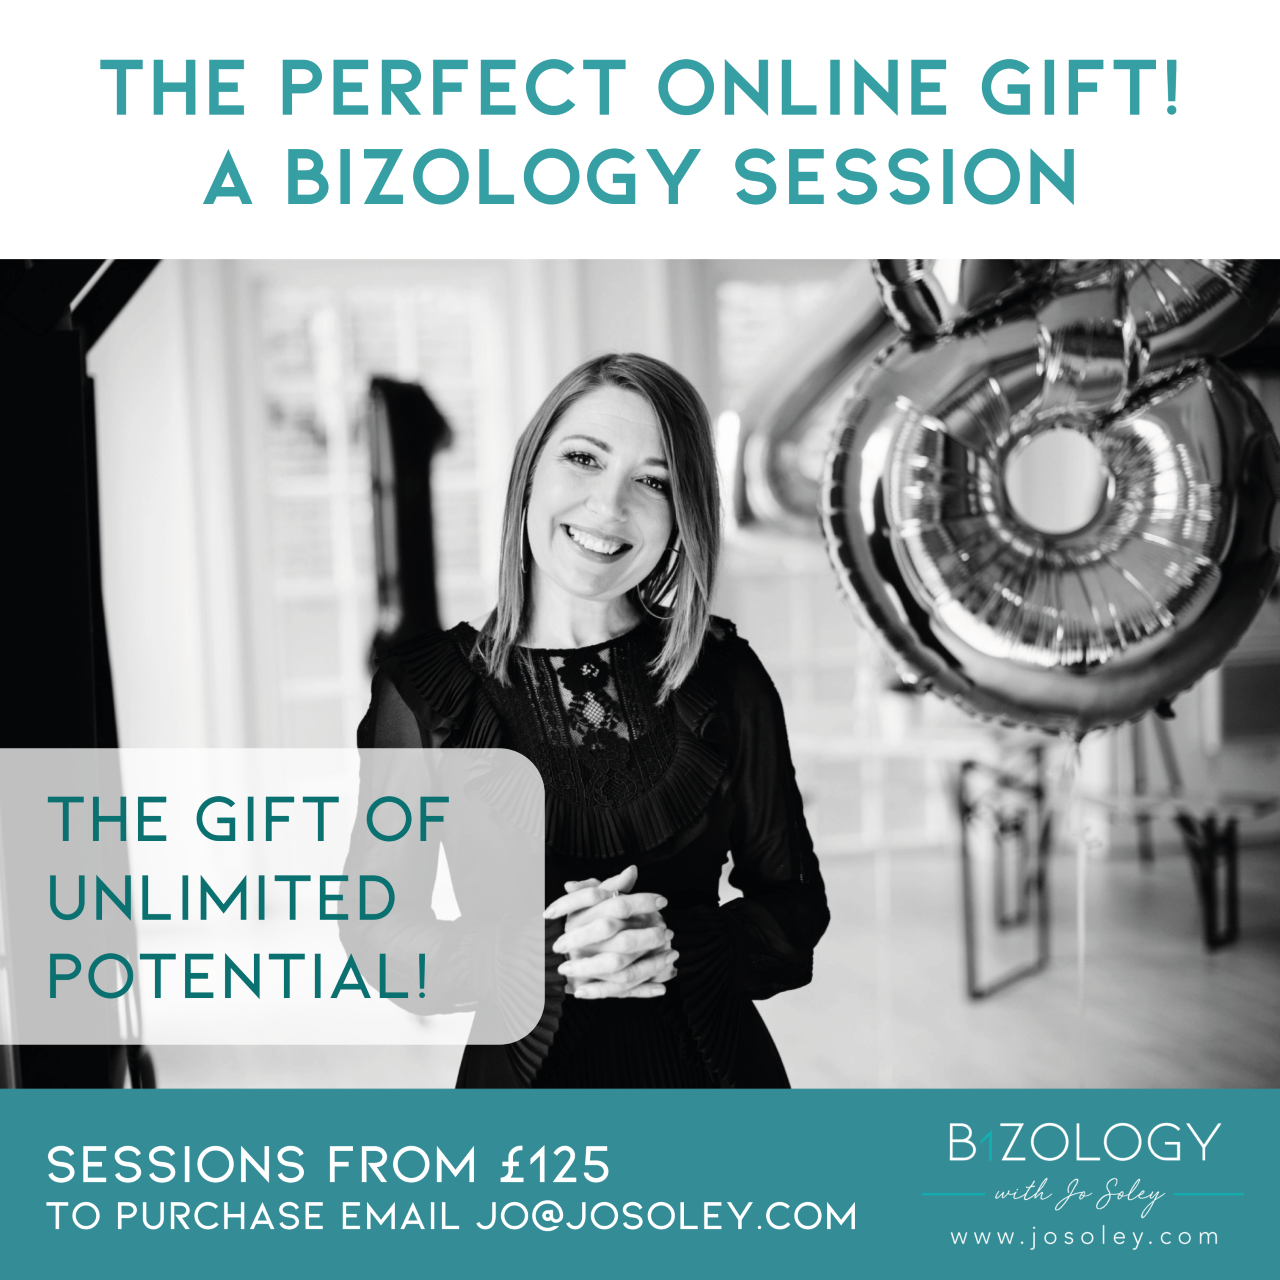 Bizology Gift Voucher